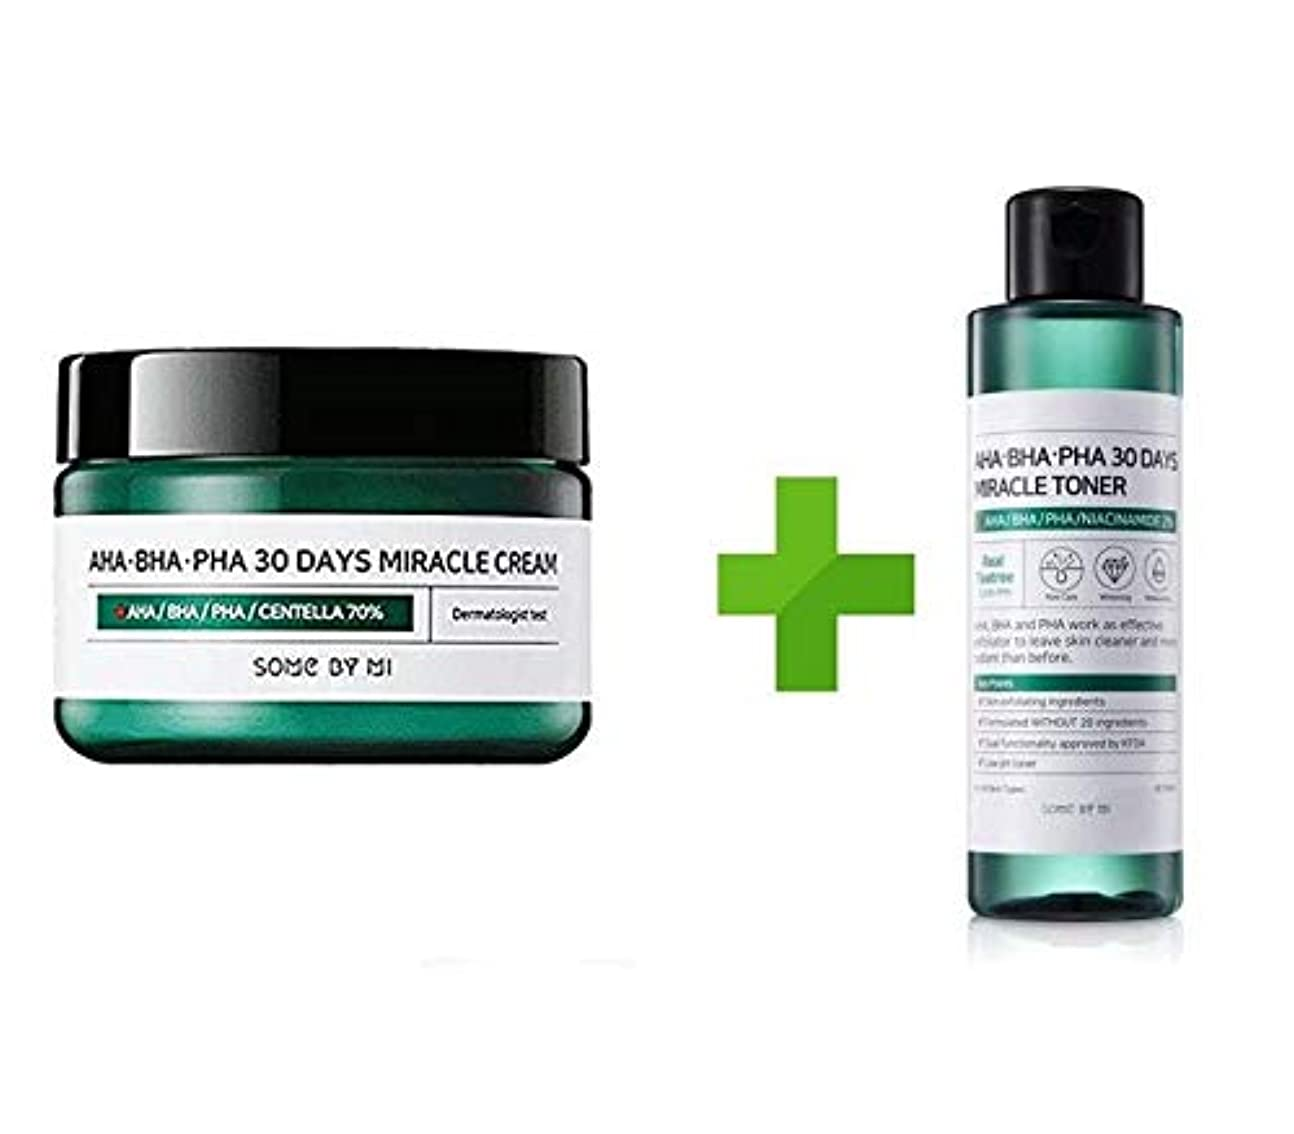 パン屋時期尚早哲学的Somebymi AHA BHA PHA Miracle Cream (50ml + Toner 150ml)Skin Barrier & Recovery, Soothing with Tea Tree 10,000ppm...